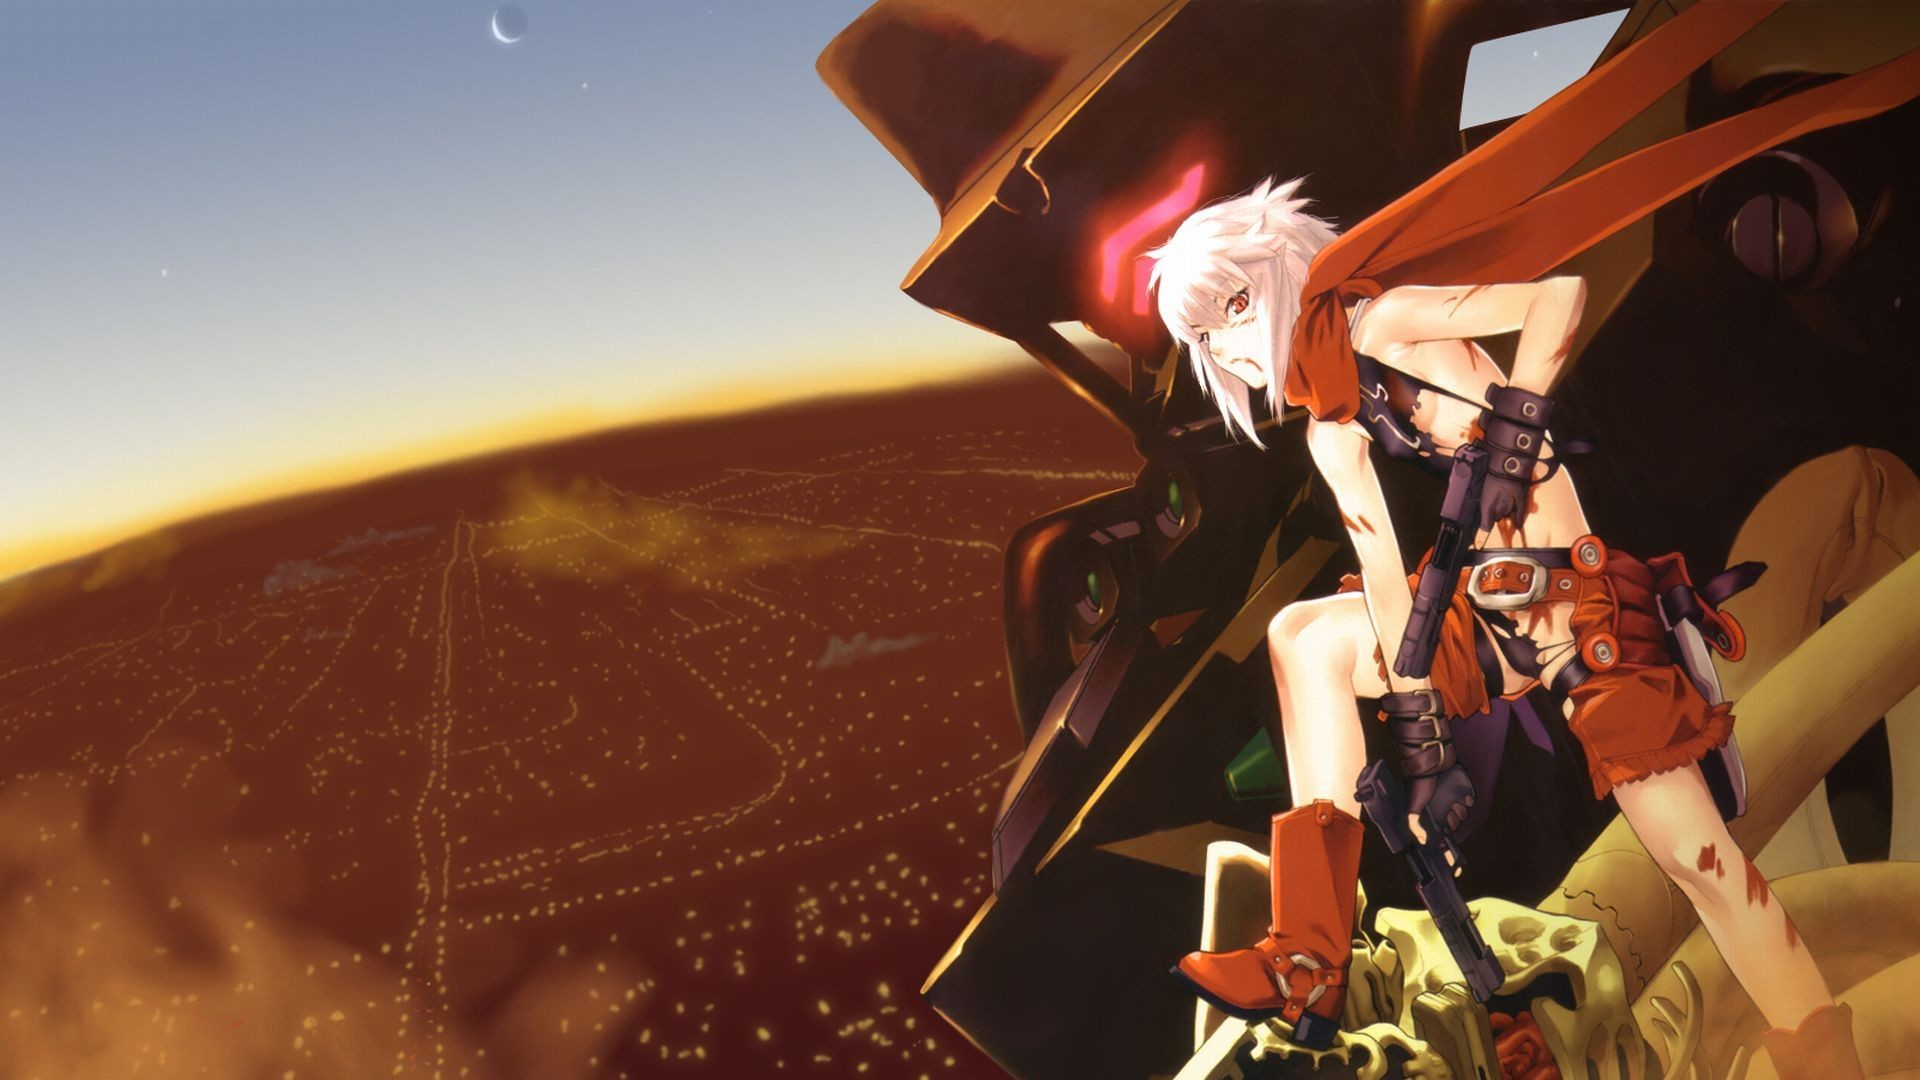 Full HD p Anime Wallpapers, Desktop Backgrounds HD, Pictures 1920×1080 Anime  Wallpapers